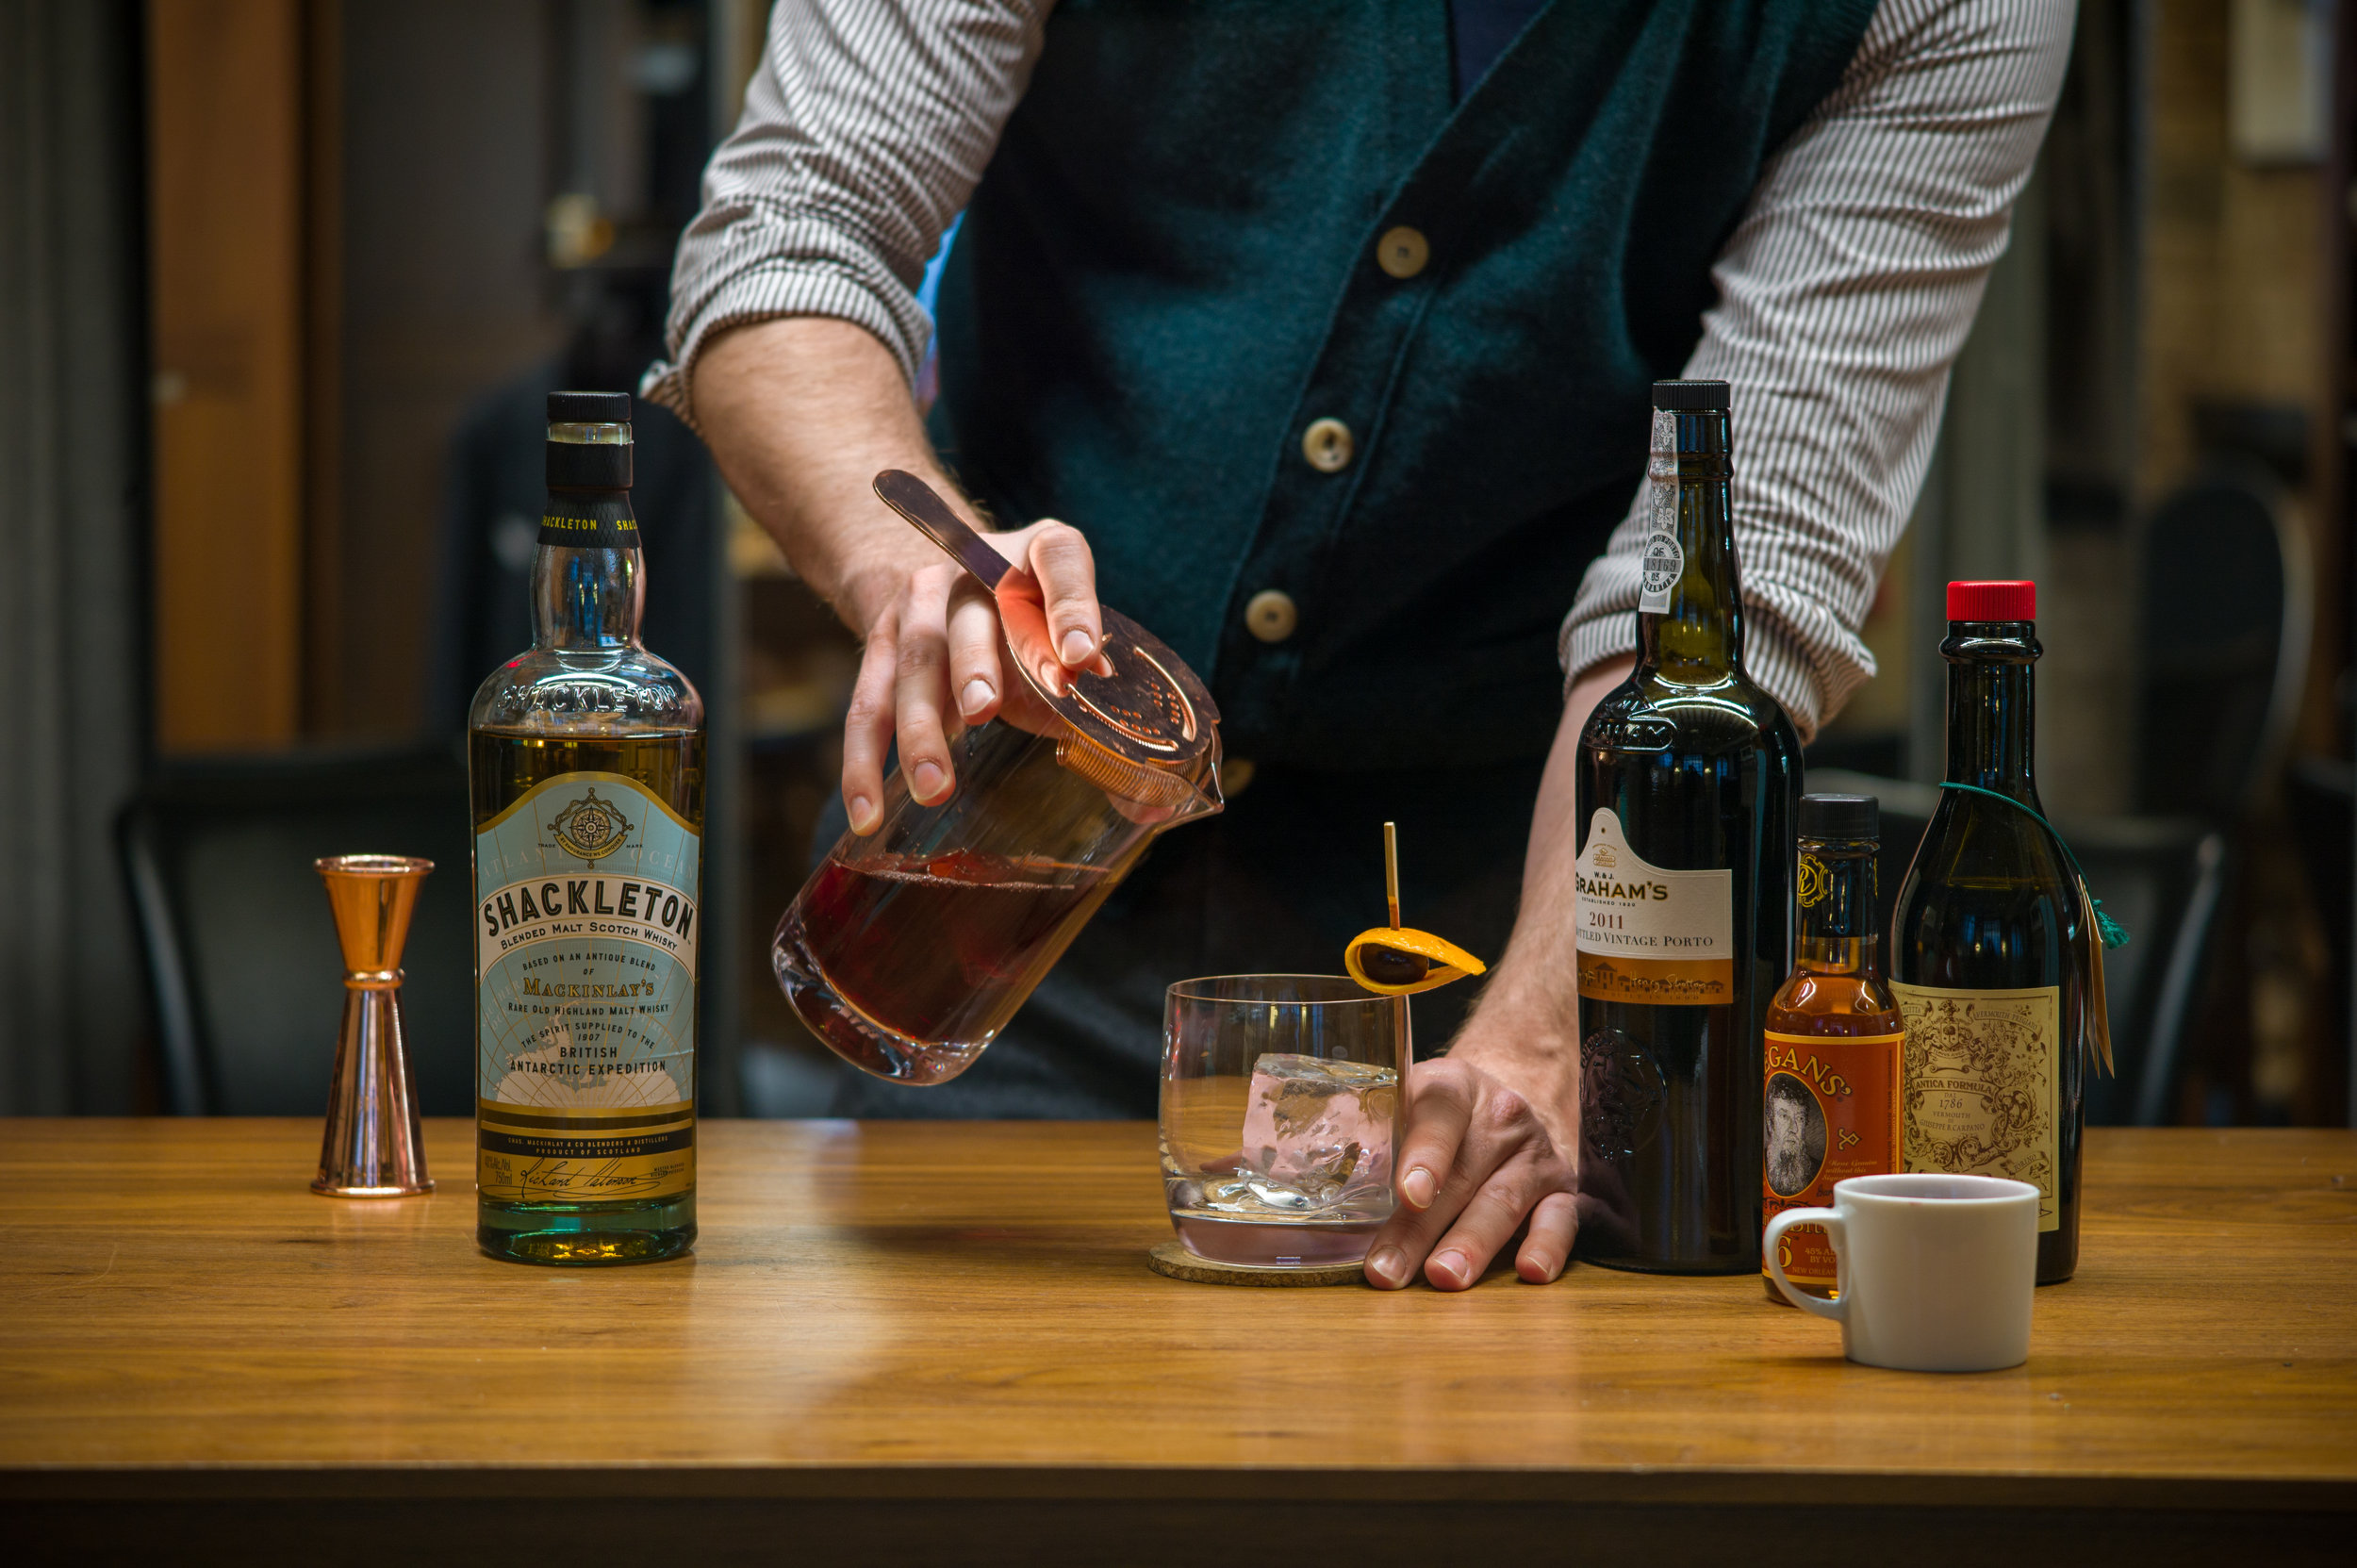 Ardent x Shackleton Whisky Pour